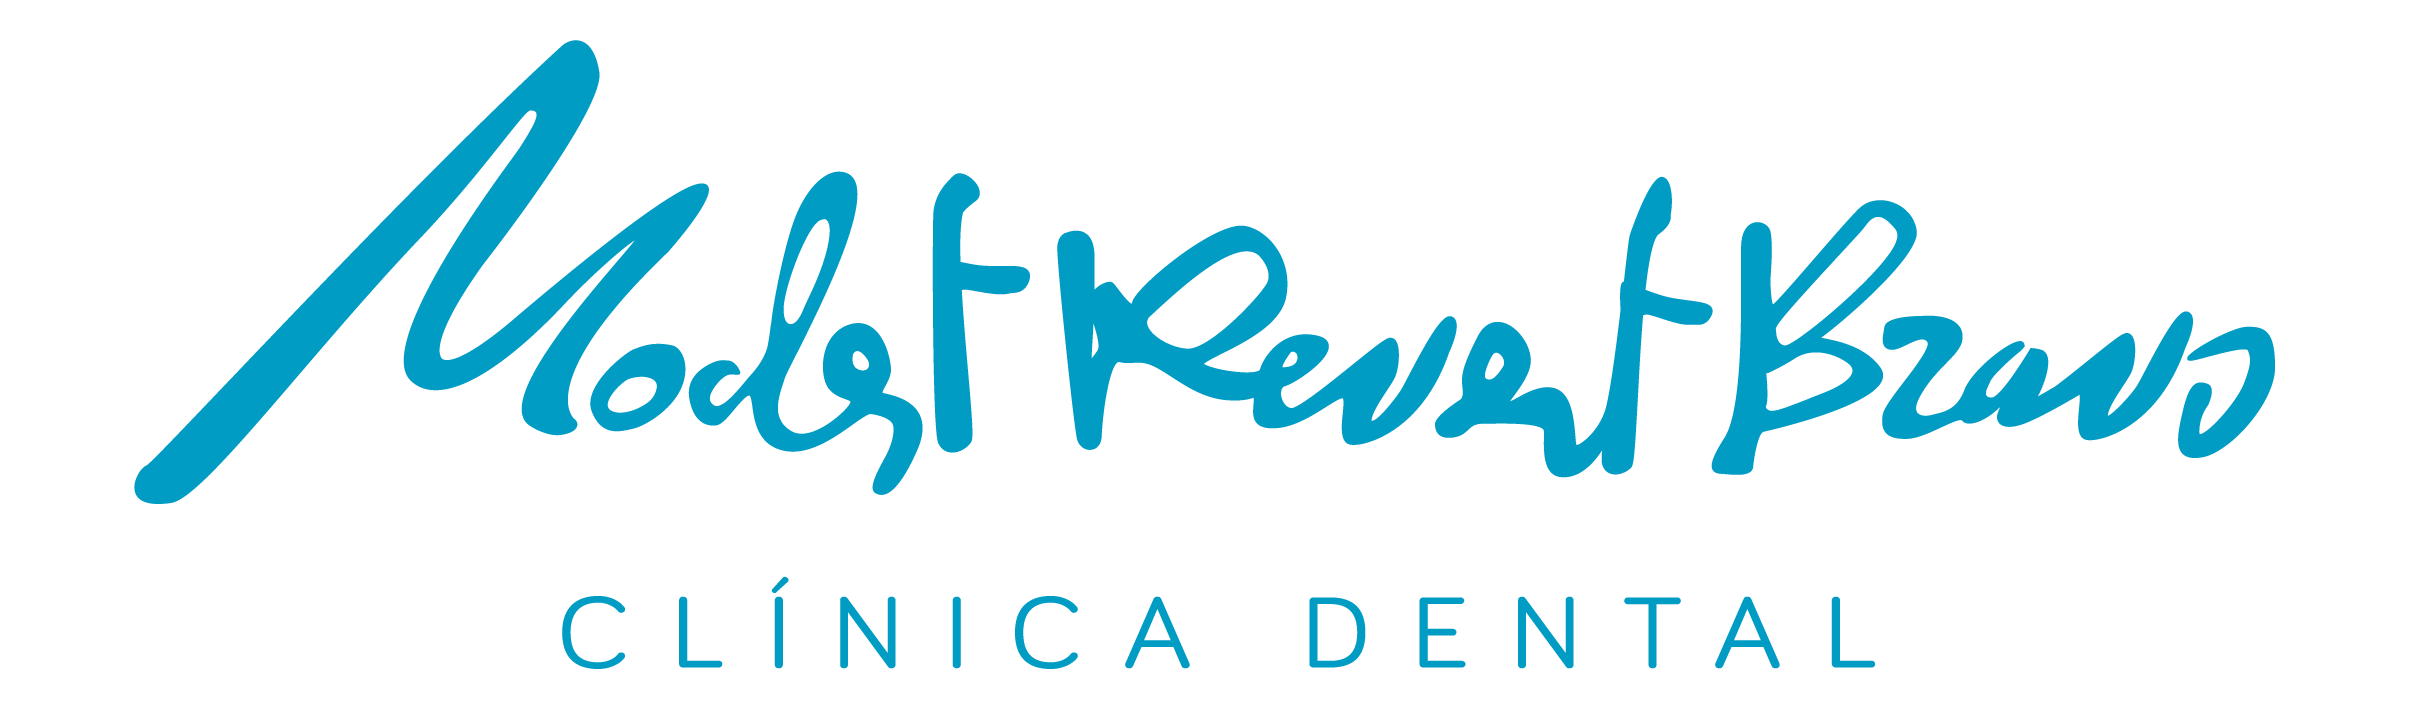 Clínica Dental Modest Revert i Bravo